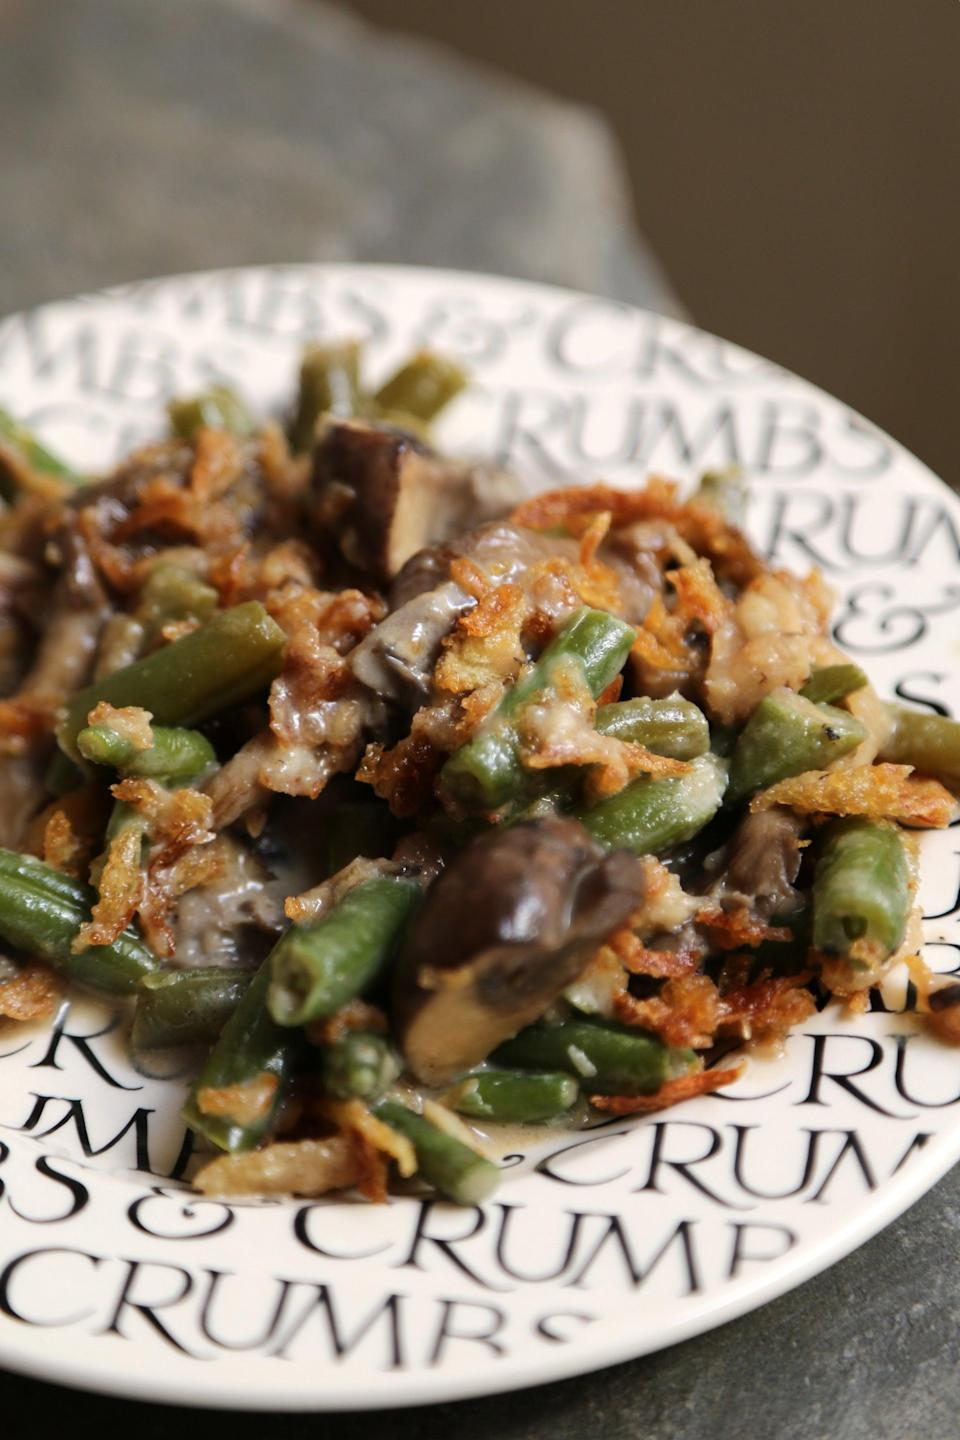 """<p>Set it and forget it with this simple recipe.</p> <p><b>Get the recipe:</b> <a href=""""https://www.popsugar.com/food/Slow-Cooker-Green-Bean-Casserole-Recipe-39177038"""" class=""""link rapid-noclick-resp"""" rel=""""nofollow noopener"""" target=""""_blank"""" data-ylk=""""slk:slow-cooker green bean casserole"""">slow-cooker green bean casserole</a></p>"""